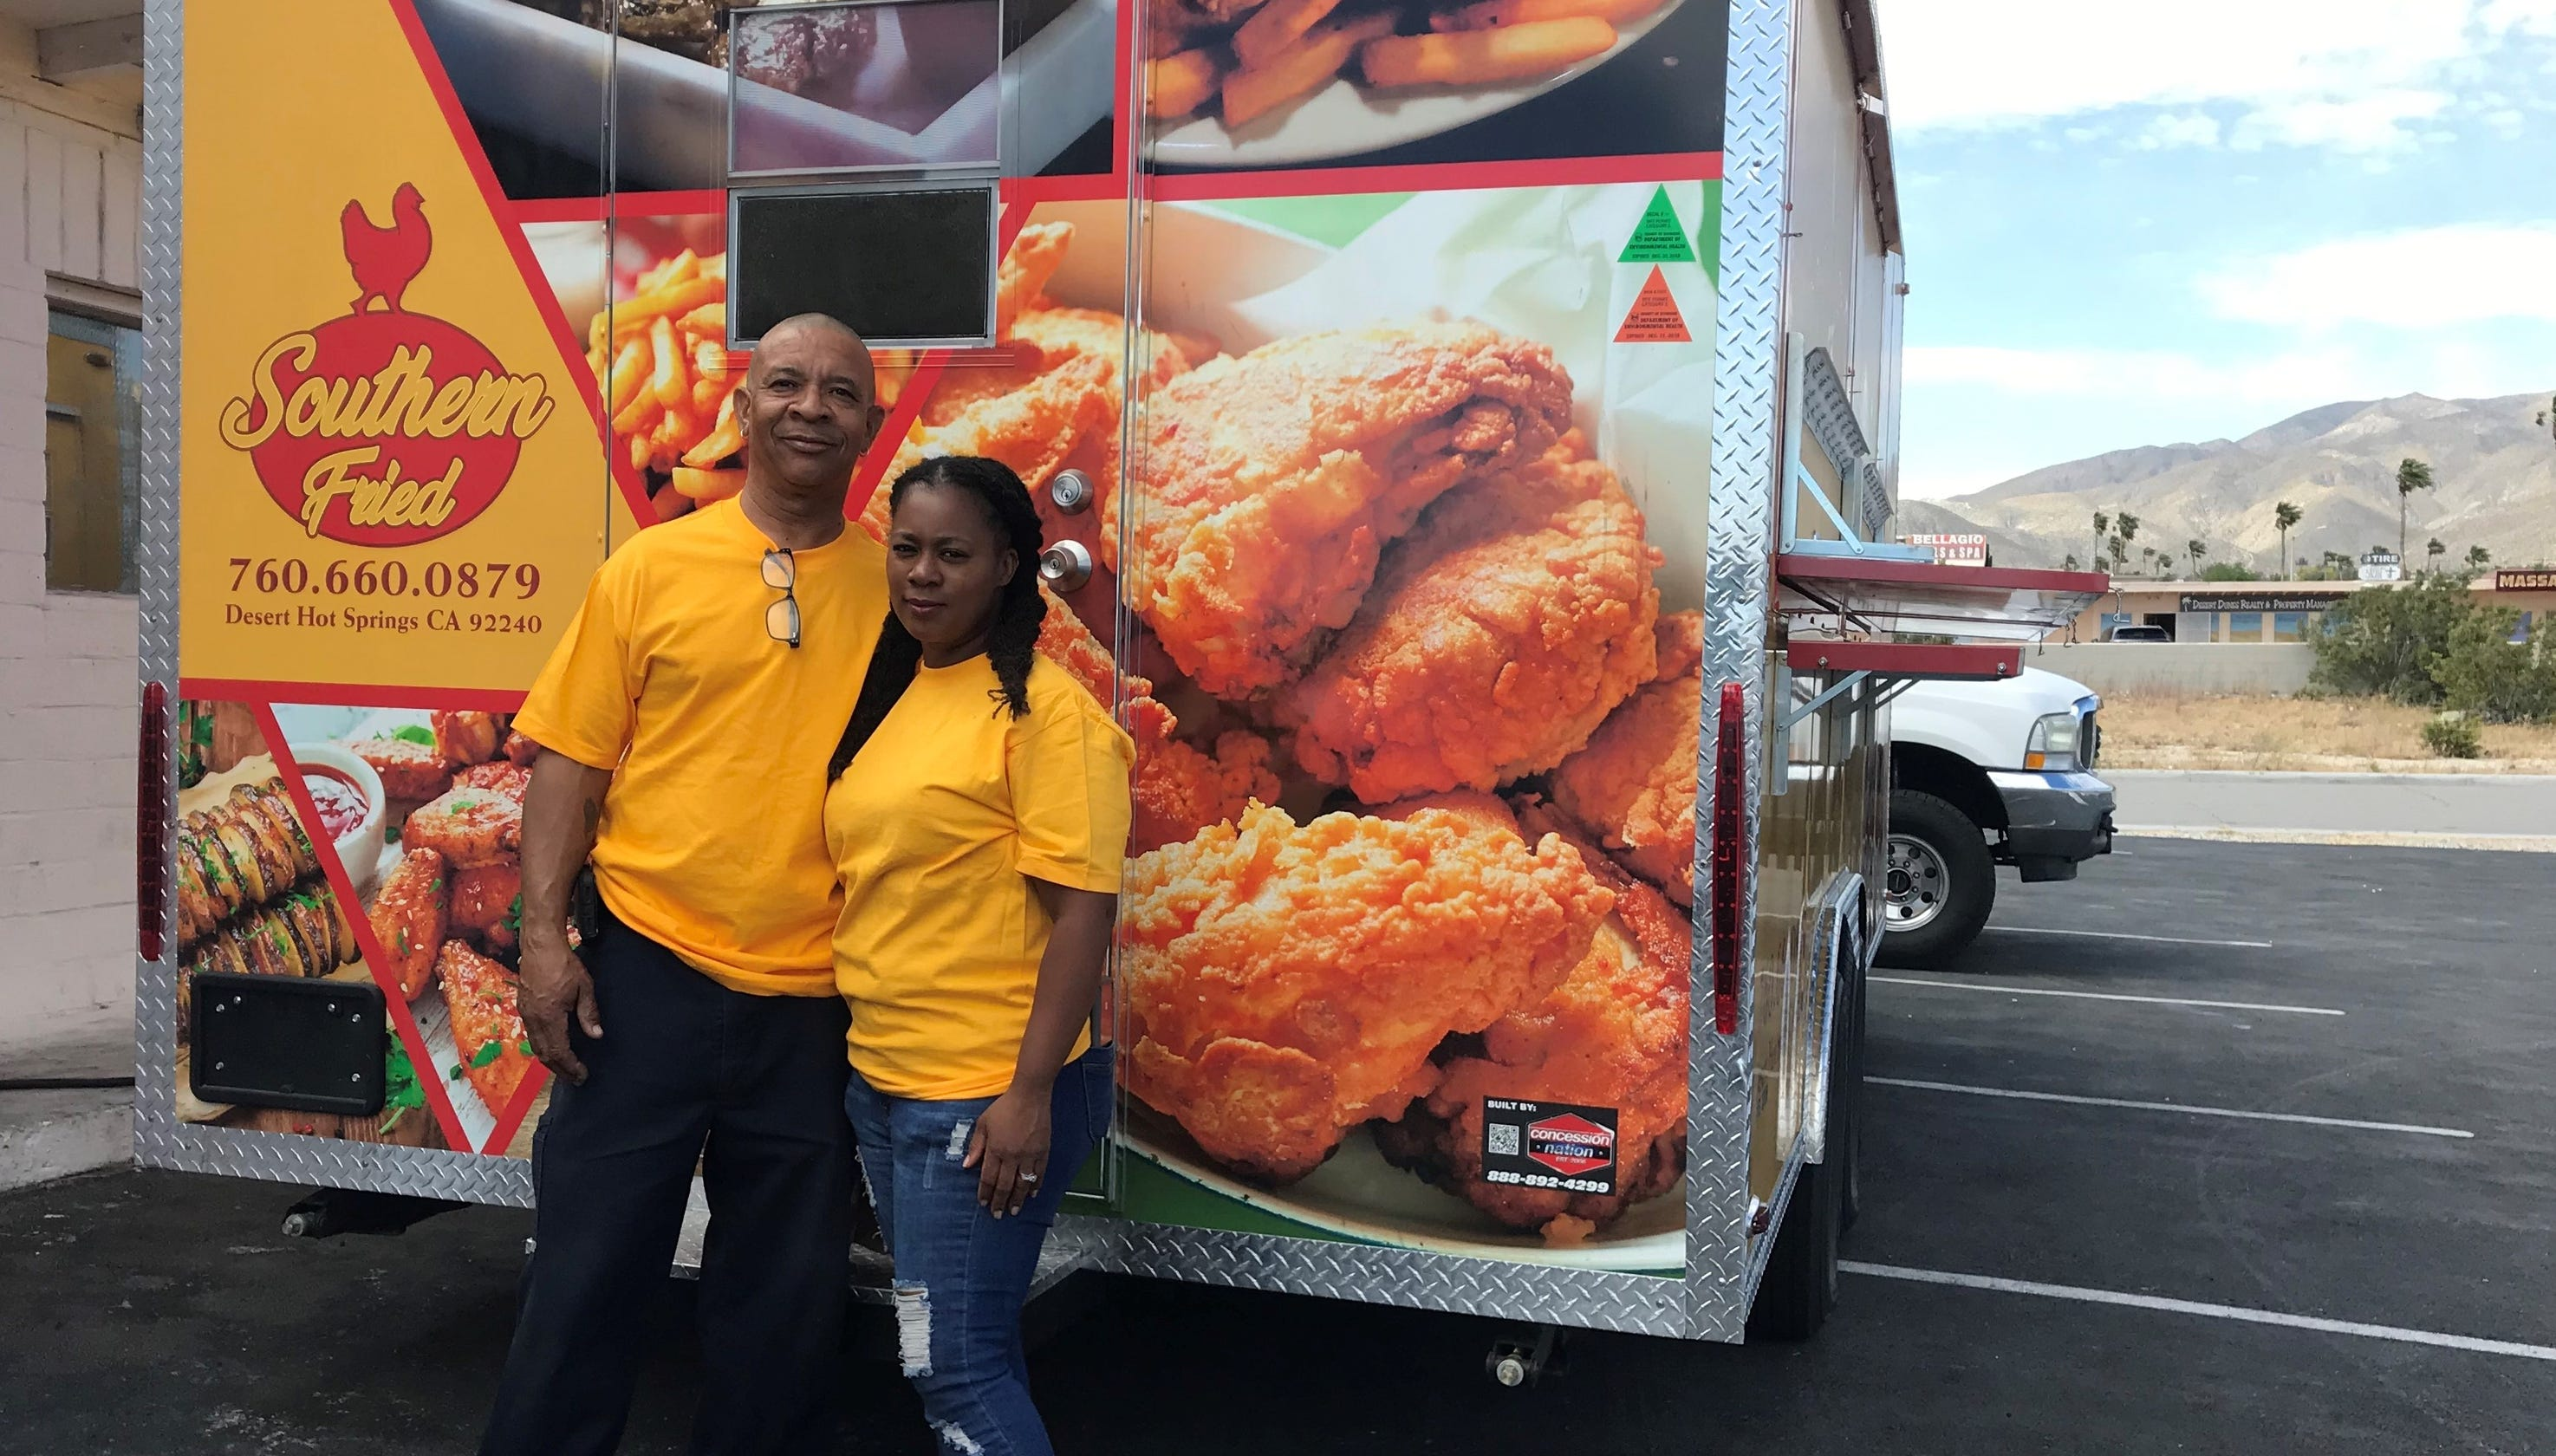 Desert Hot Springs Finally Has A Food Truck Southern Fried